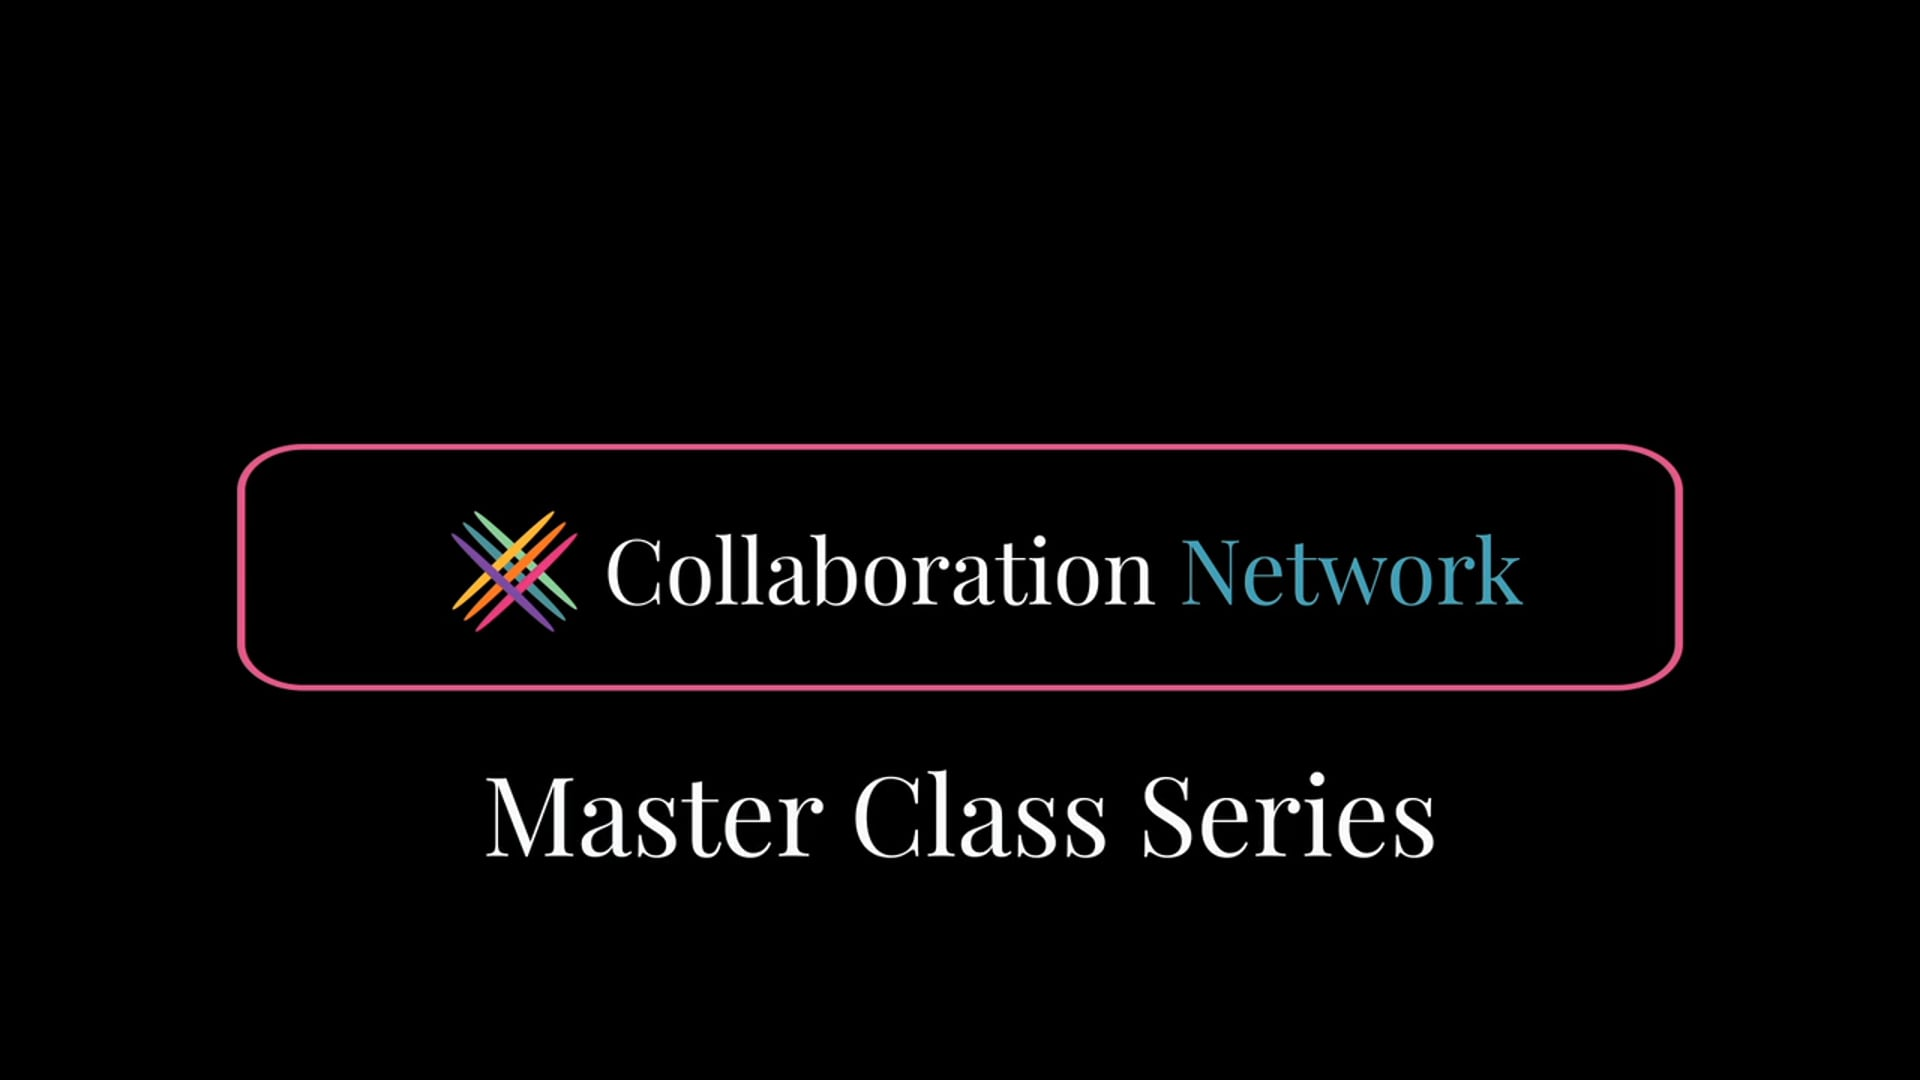 Collaboration Master Class: Episode 1 - 'Transforming the way vulnerable consumers can be identified across essential services' with Dr. Elizabeth Blakelock